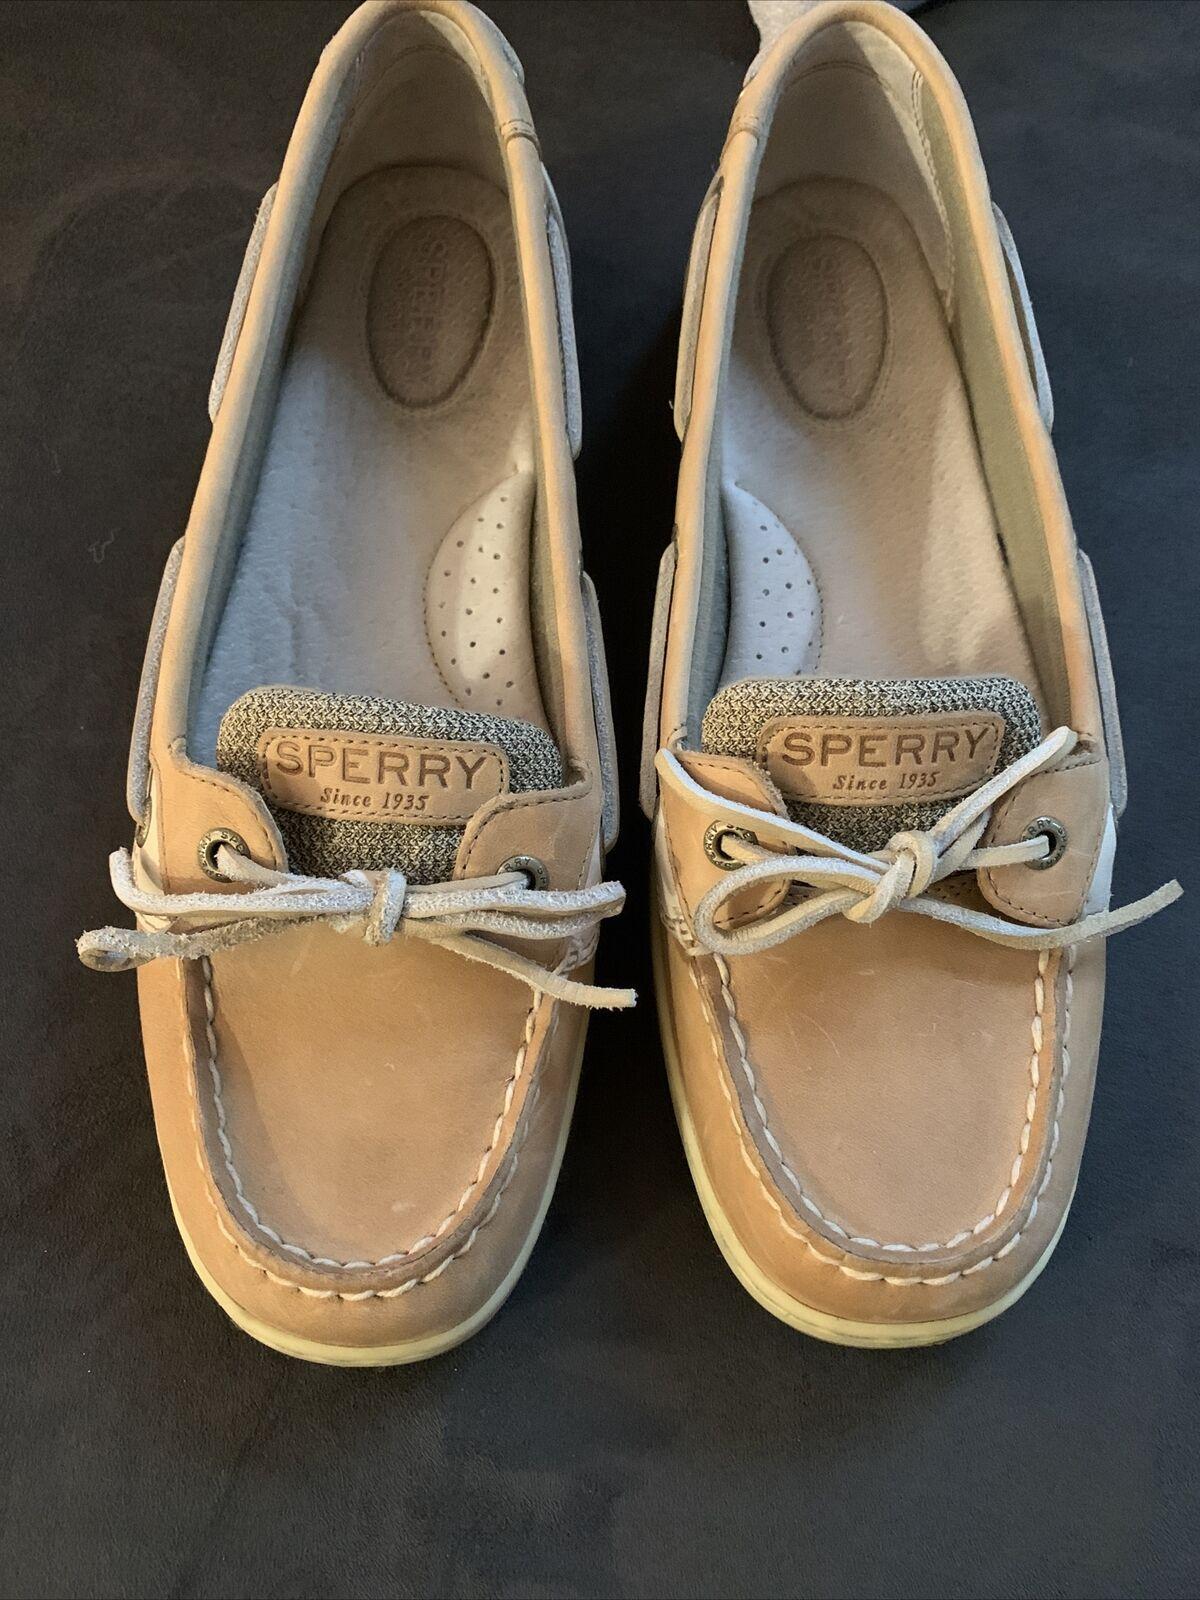 Womens Size 10M Sperry Shoes. Worn Once. Great Condition.